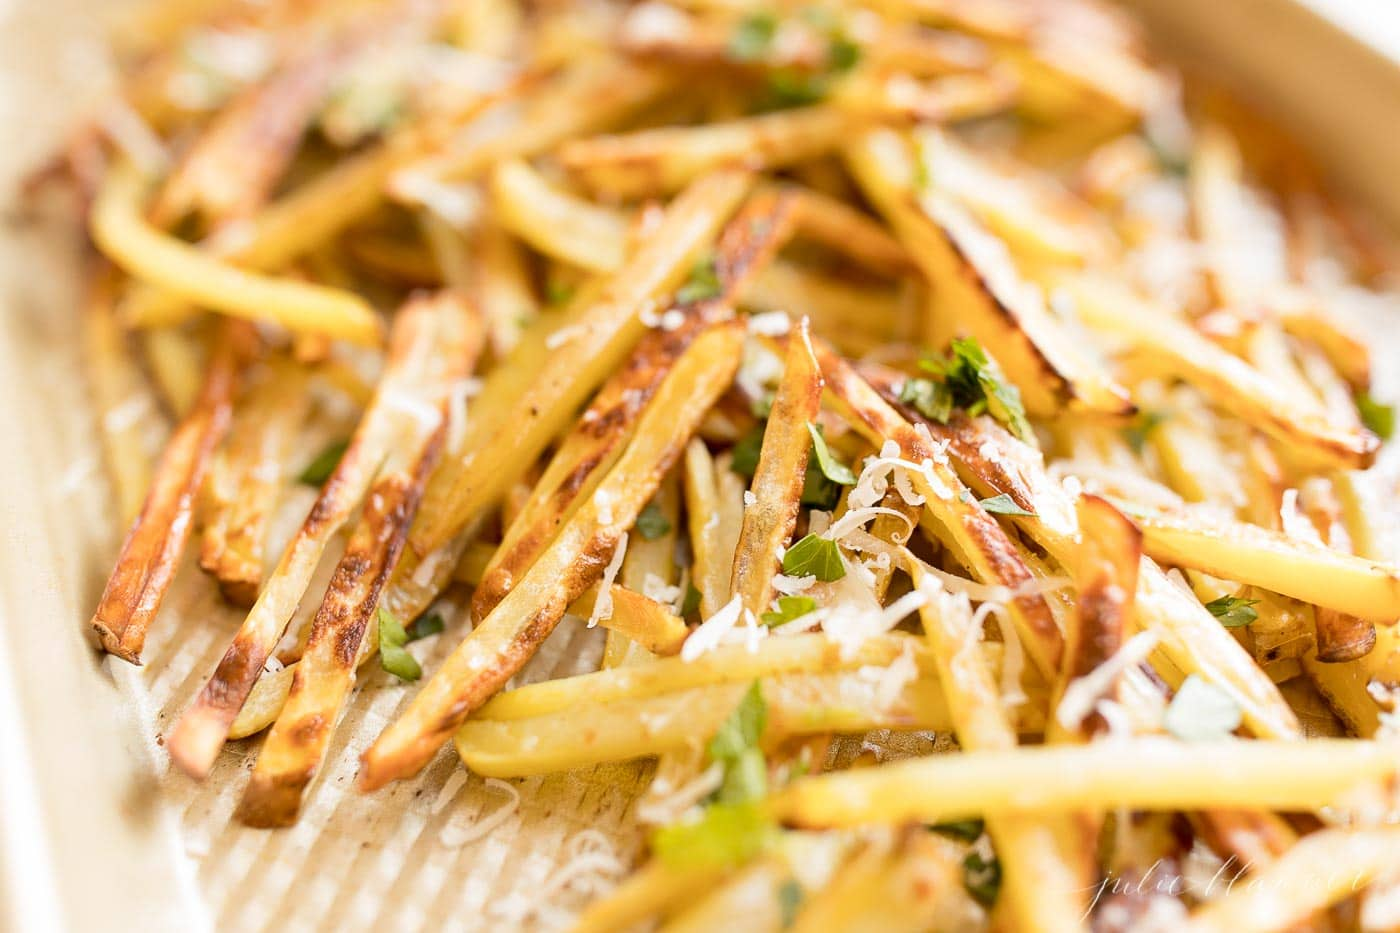 Truffle fries on a sheet pan, topped with parmesan cheese and parsley.